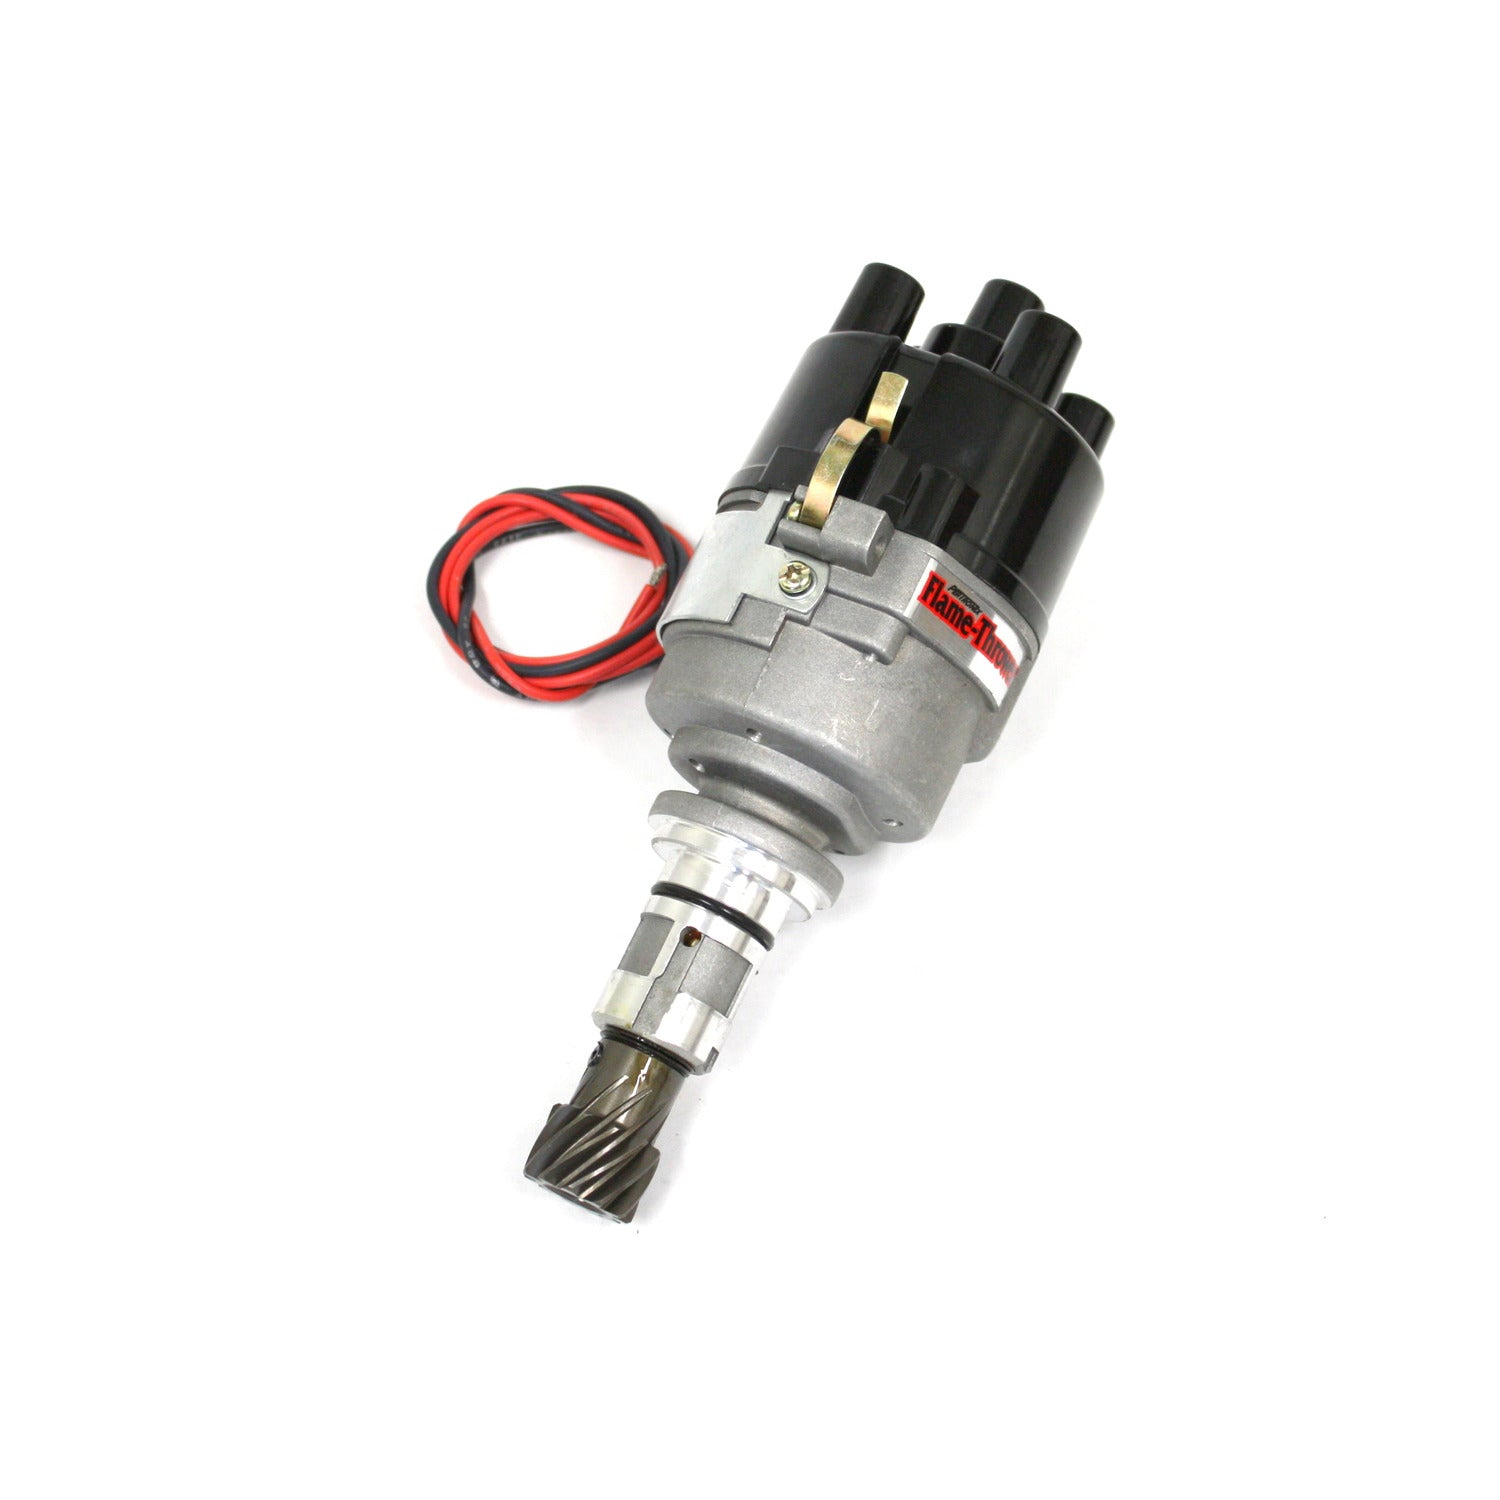 PerTronix D7190509 Flame-Thrower Electronic Distributor Side Exit Cast Ford X-Flow Plug and Play with Ignitor III Non Vac Adv